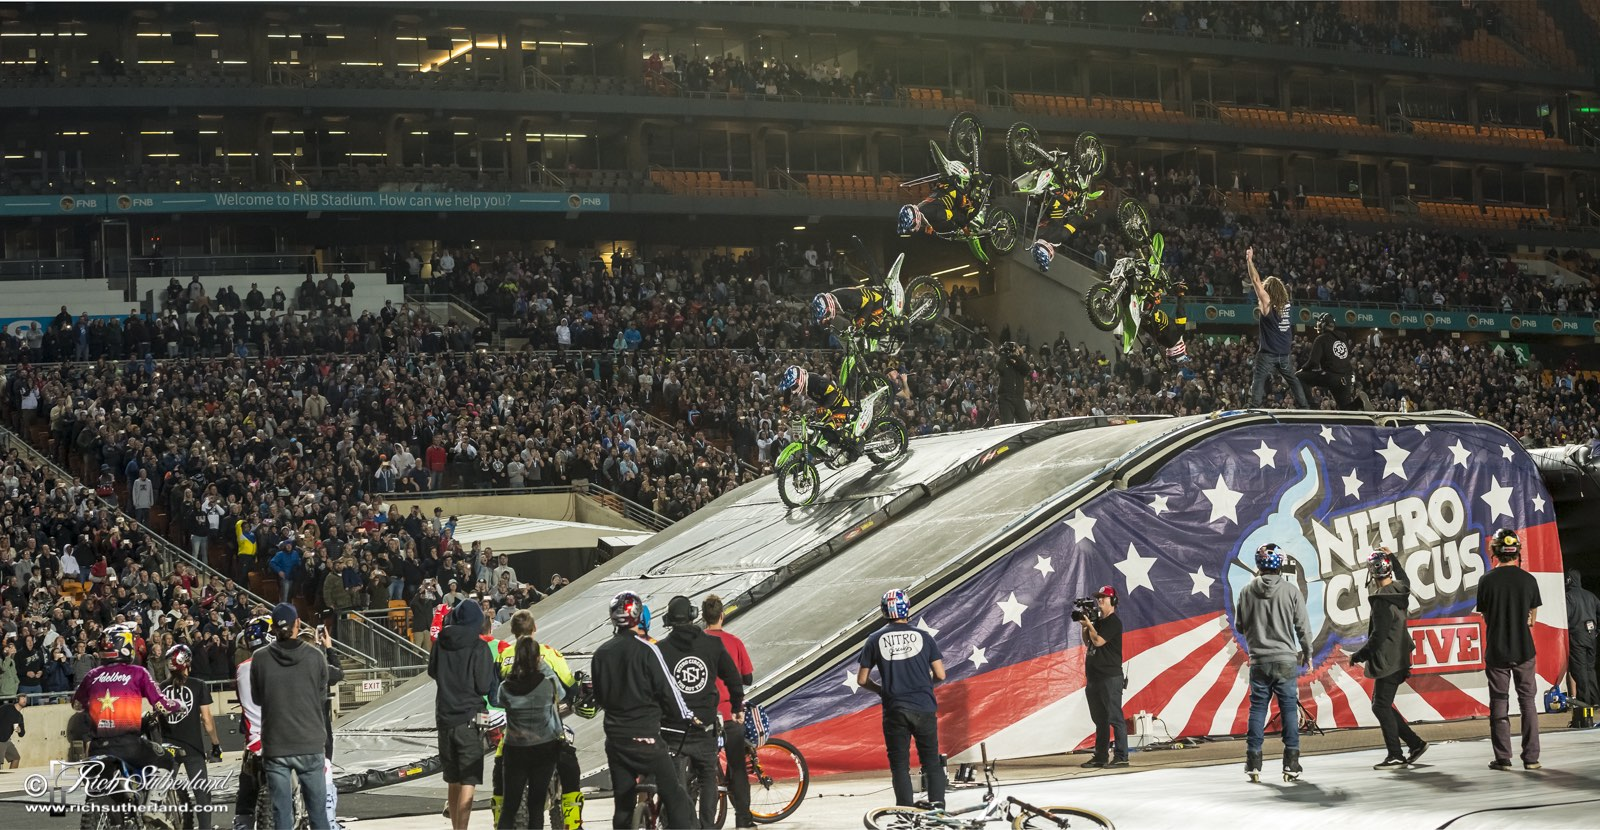 Bruce Cook landing a backflip on a dirt bike at Nitro Circus Live